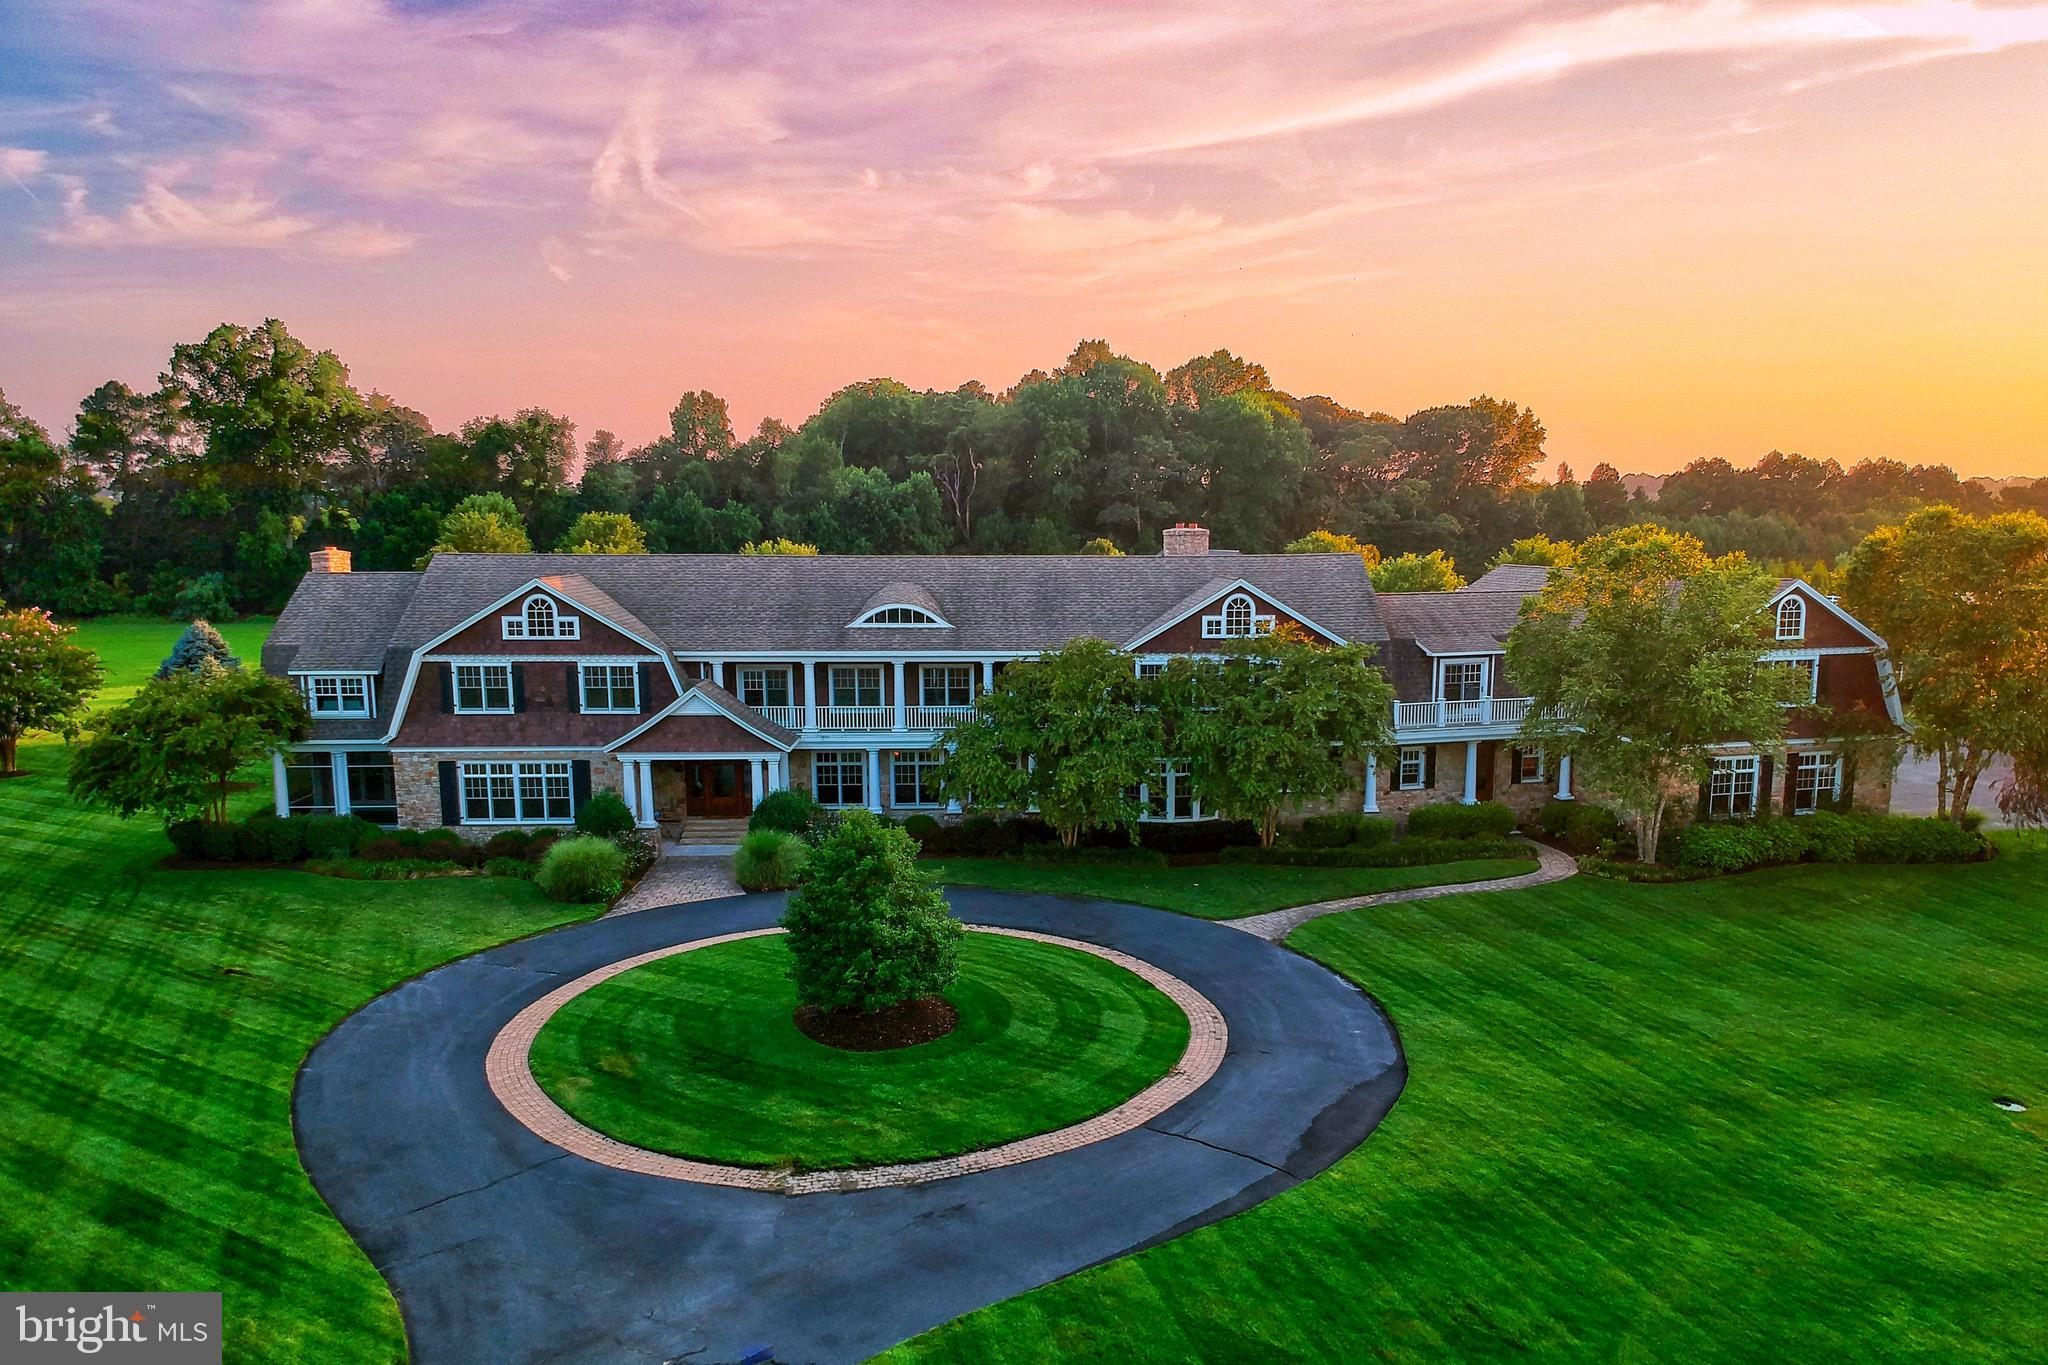 """Welcome to Stonewater Farms, an incredible 13,739 sf waterfront estate located just minutes from the Delaware Beaches. This is a true one-of-a-kind estate that sits on over 10 acres along Herring Creek, with a private horse stable, 3 large horse pastures, private floating dock with jet ski lifts, a  4,000 sf concrete floor pole building, an in ground pool, and so much more! This Hamptons style, stone and cedar shake,  fully custom home is built like none other in the area with 2""""x6"""" framed walls, Advantech sheathing,  and over 250 tons of 8"""" thick stone around the entire first floor exterior of the home! At just under 14,000 sf this home features 6 bedrooms, 9 bathrooms, oversized 5 car attached garage, large mud room, a home theater, 2 separate home gyms, a full custom bar in recreation room, large home office,  5 fireplaces, newly refinished kitchen with top tier Sub-Zero and Wolfe stainless steel appliances, grand dining room with 24' custom table, greatroom with stone fireplace, formal living room, geothermal HVAC systems, Anderson 400 series windows, wide plank oak floors, 8' doors, coffered ceilings,  stream shower, 2 screened porches, pool house, and many other luxury finishes throughout. This estate gives both luxury and privacy, all while being just minutes from the Rehoboth and Lewes beaches, shopping, golf and restaurants. This is a perfect oasis for someone looking to escape the hustle and bustle of the city or for anyone looking to gain privacy. Boating access to Herring Creek, Rehoboth Bay and Atlantic Ocean.  A truly one-of-a-kind property that could not be replicated and is priced well below replacement costs. Don't let this opportunity to own one of Delaware's premier estates slip away! Low property taxes. Adjacent 4.71 acre waterfront lot also available (MLS Listing: DESU2002704)."""